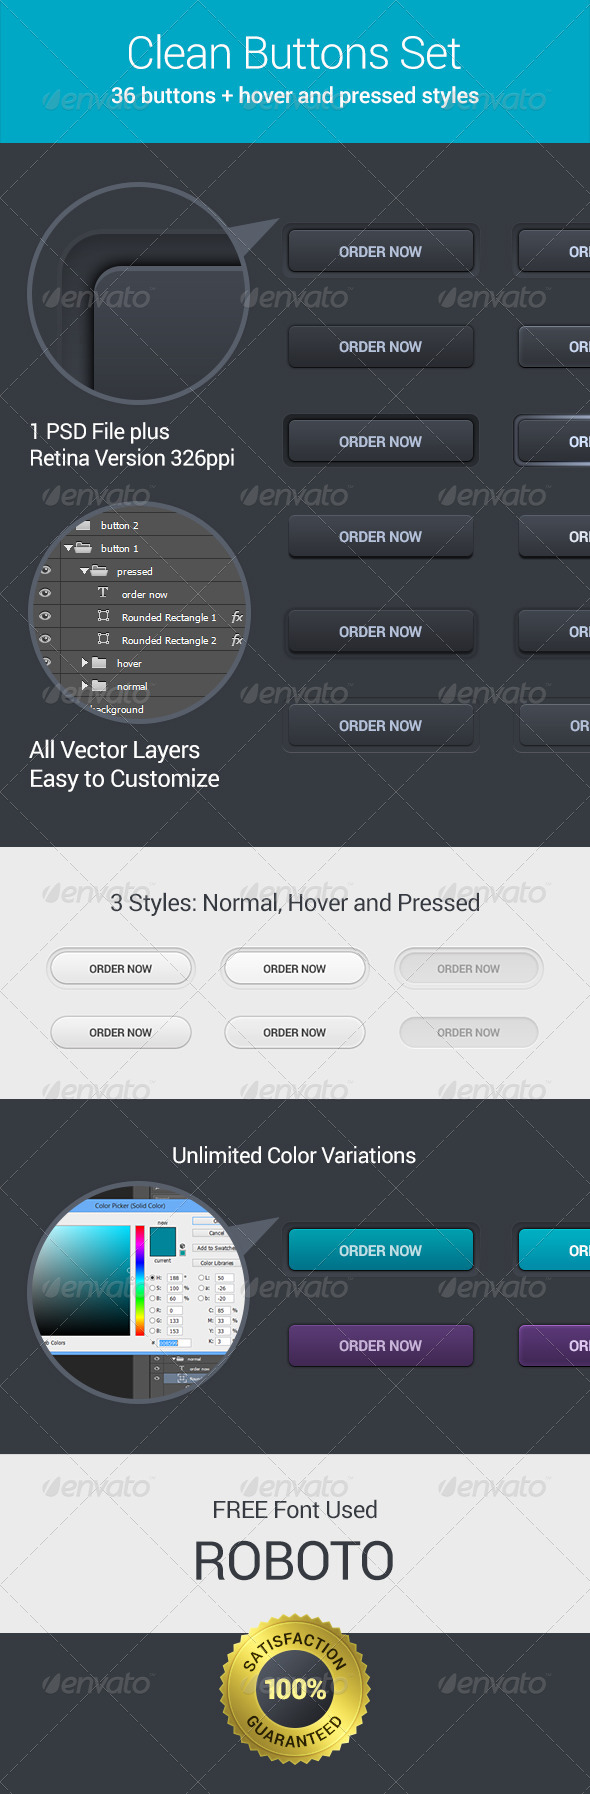 GraphicRiver Clean Buttons Set 6552672